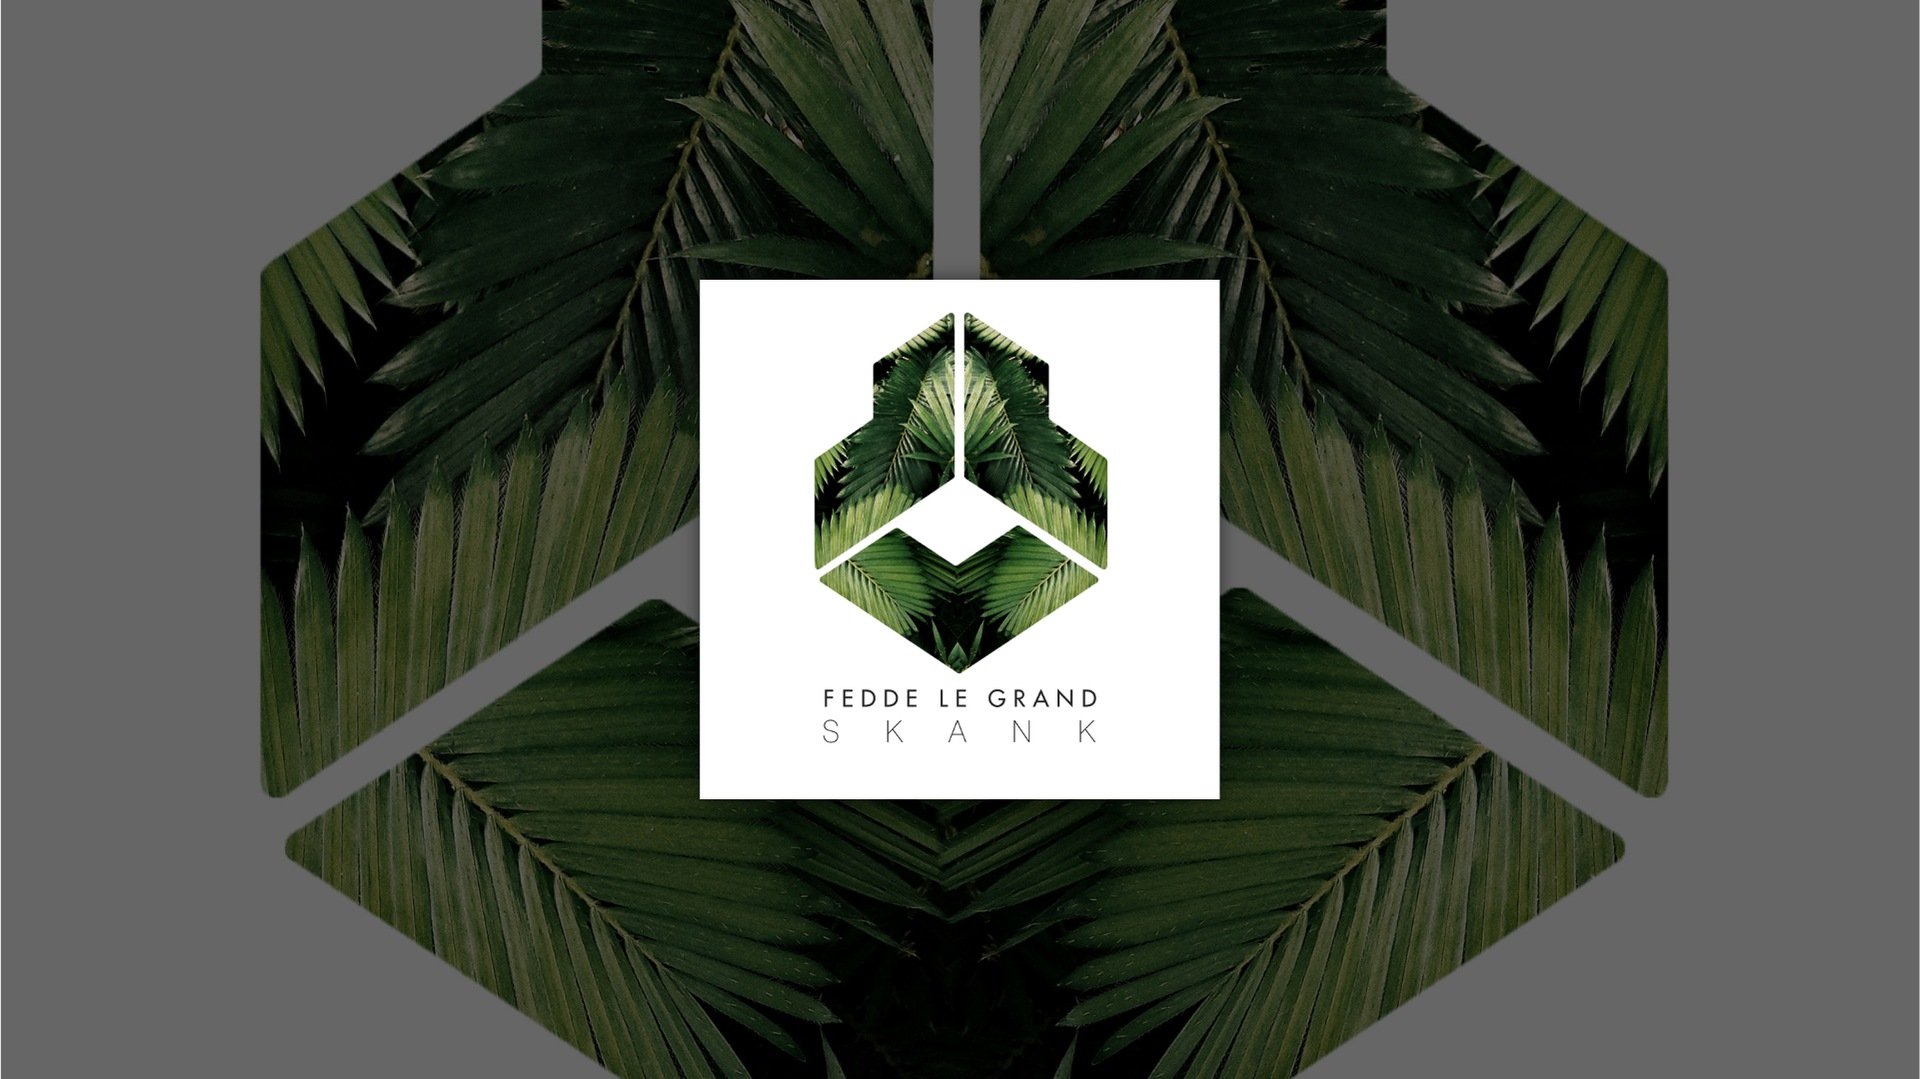 OUT NOW: FEDDE LE GRAND - SKANK